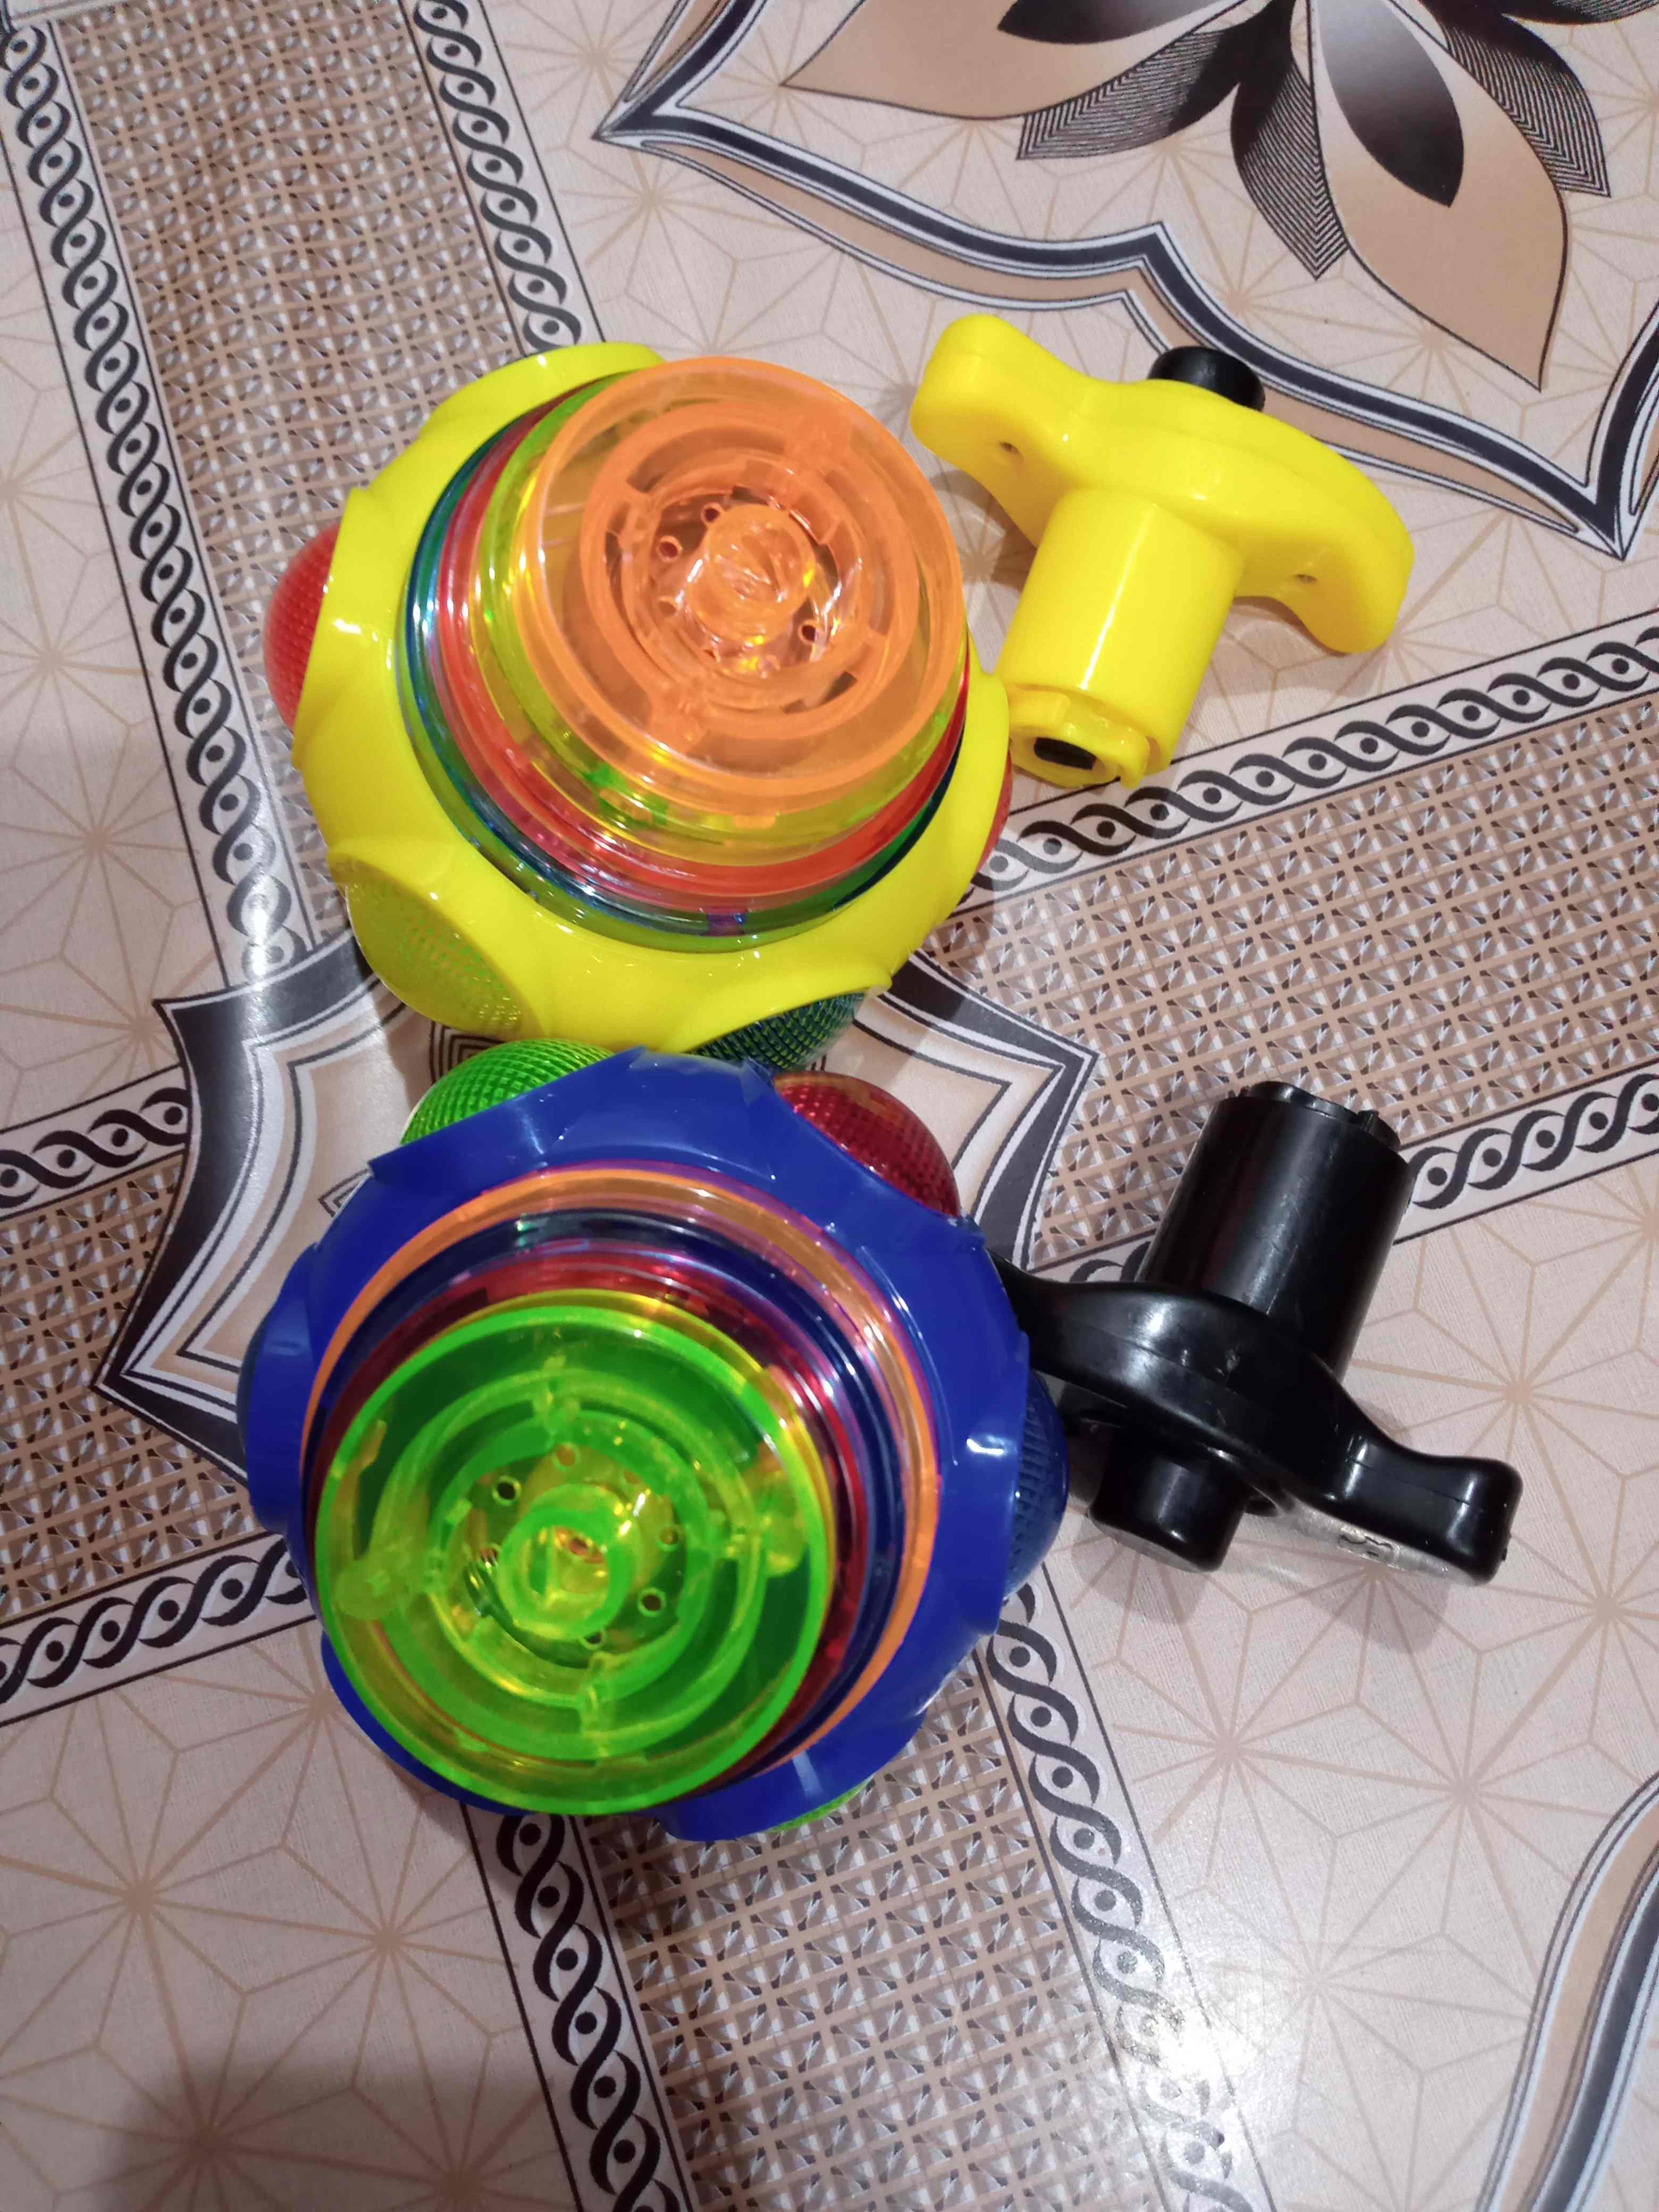 Toy for kids latoo toy